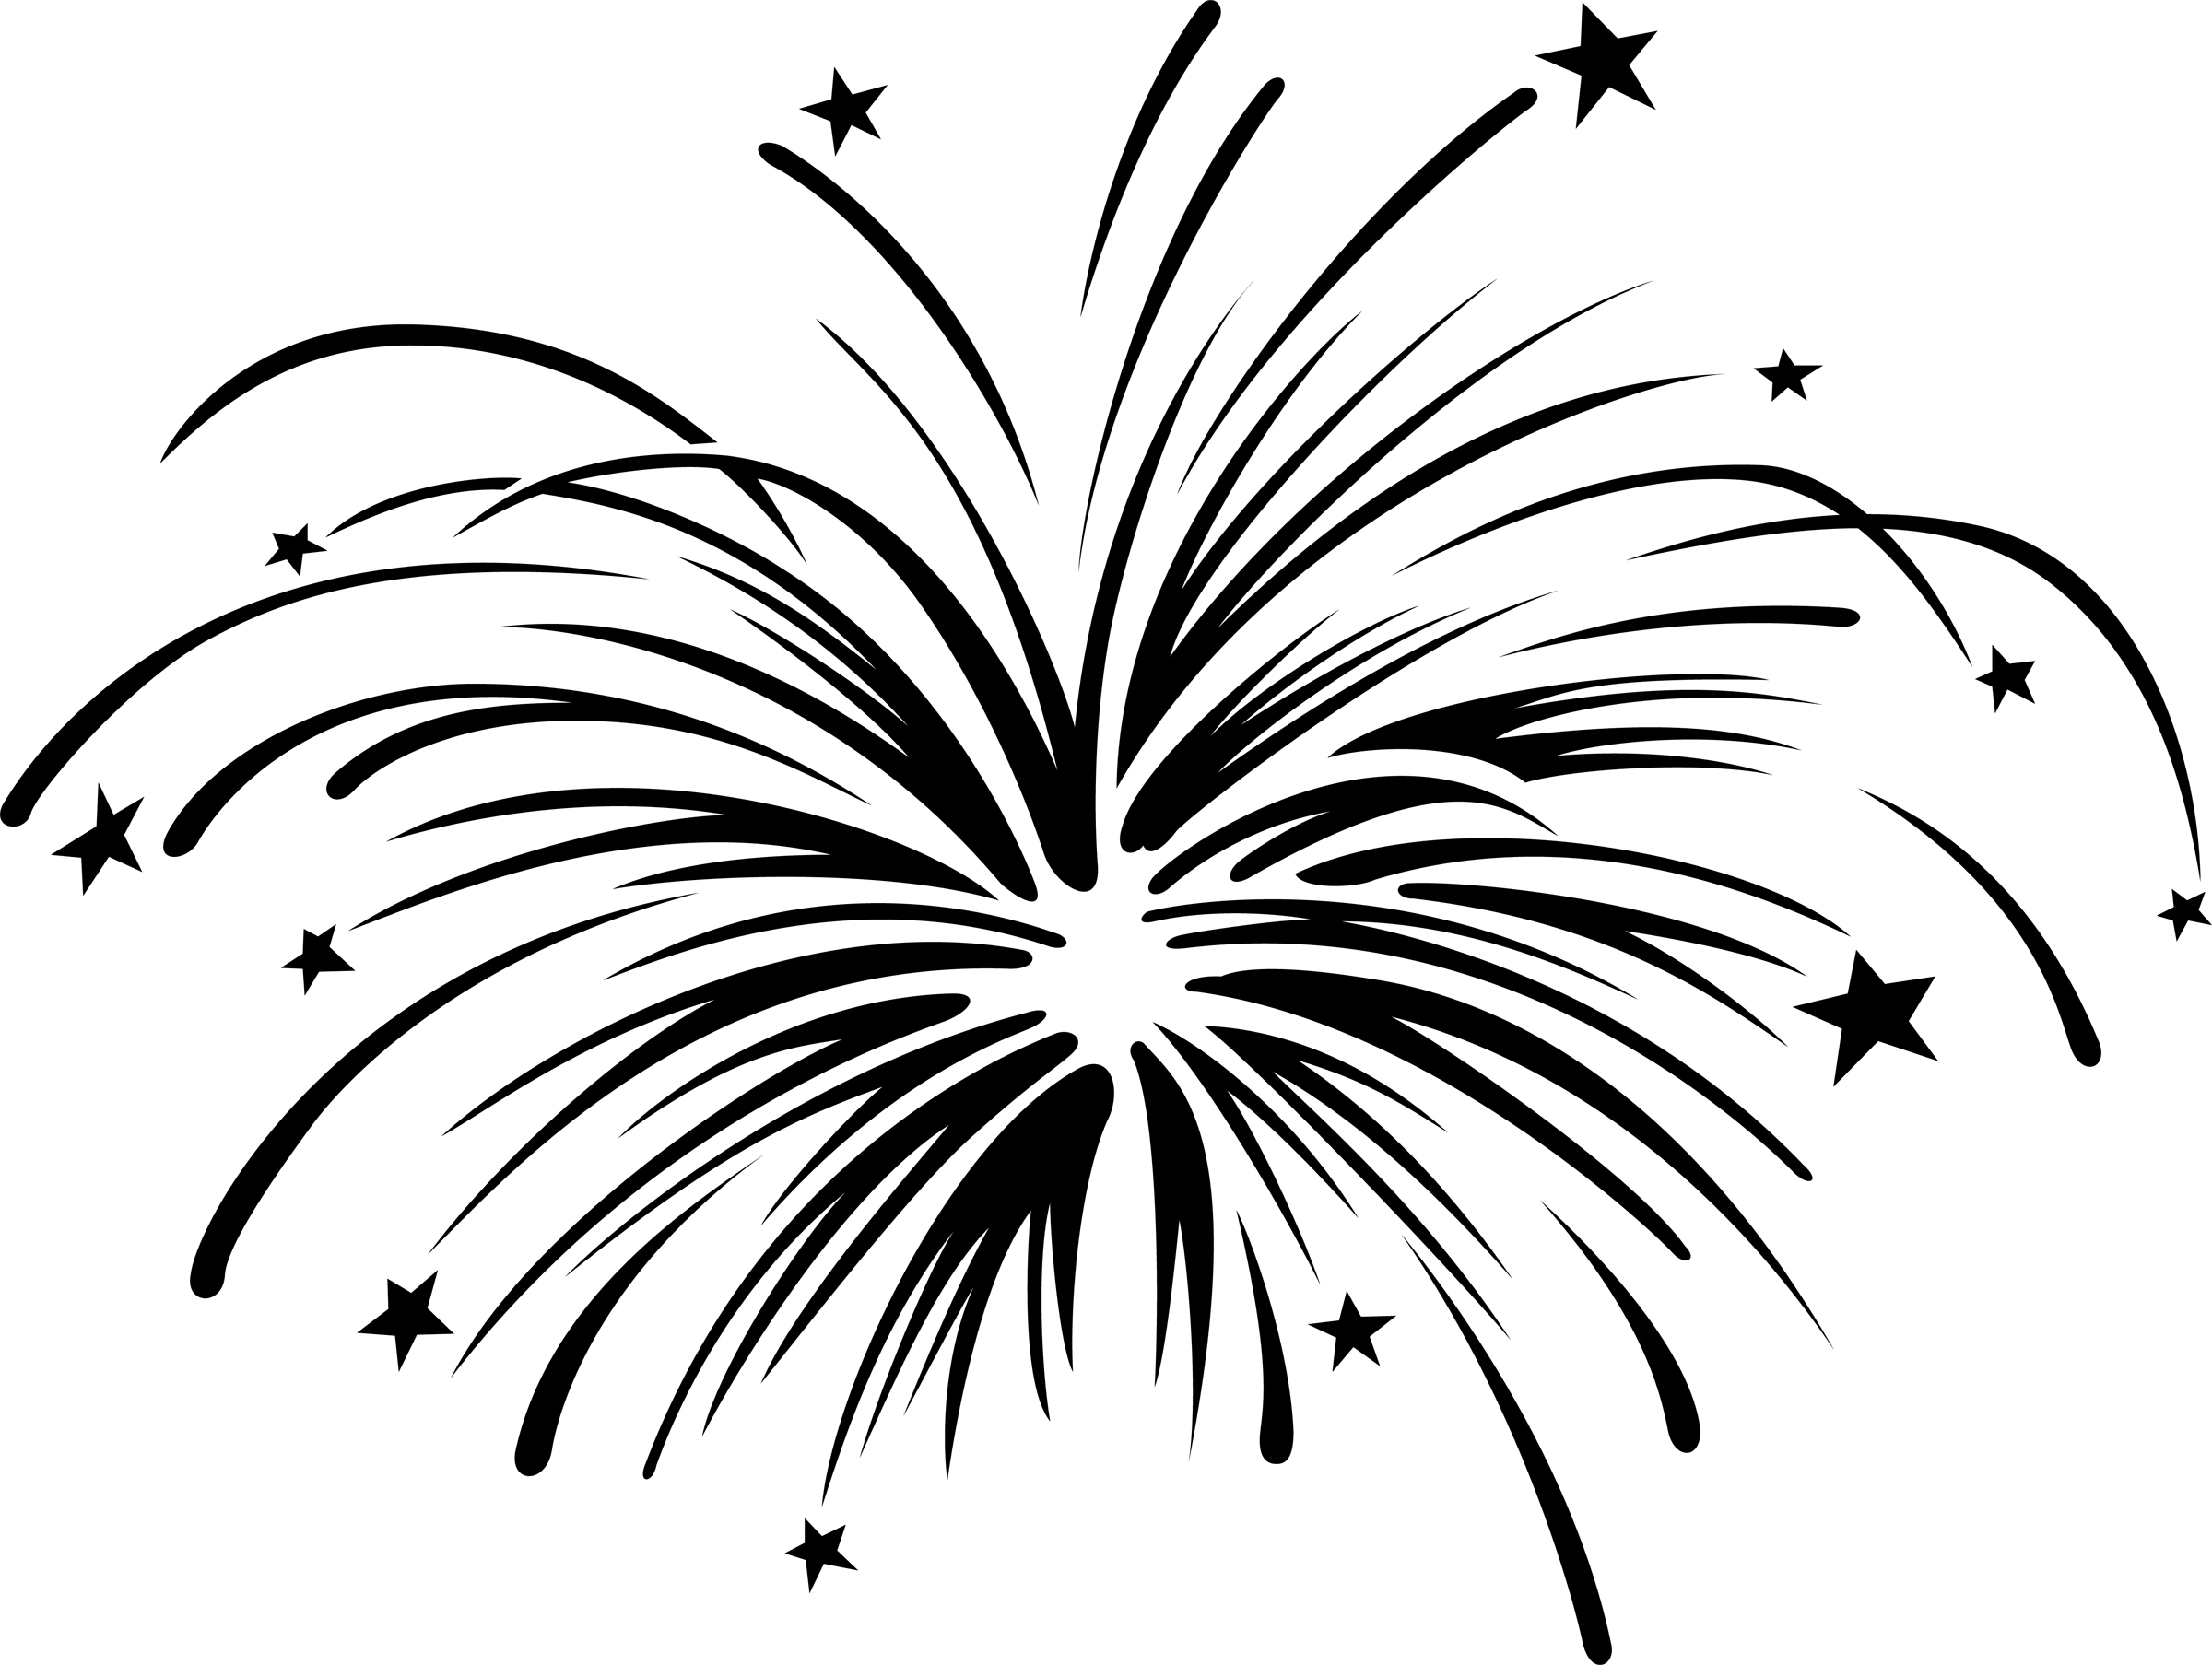 Fireworks Clipart Black And White   Clipart Panda   Free Clipart